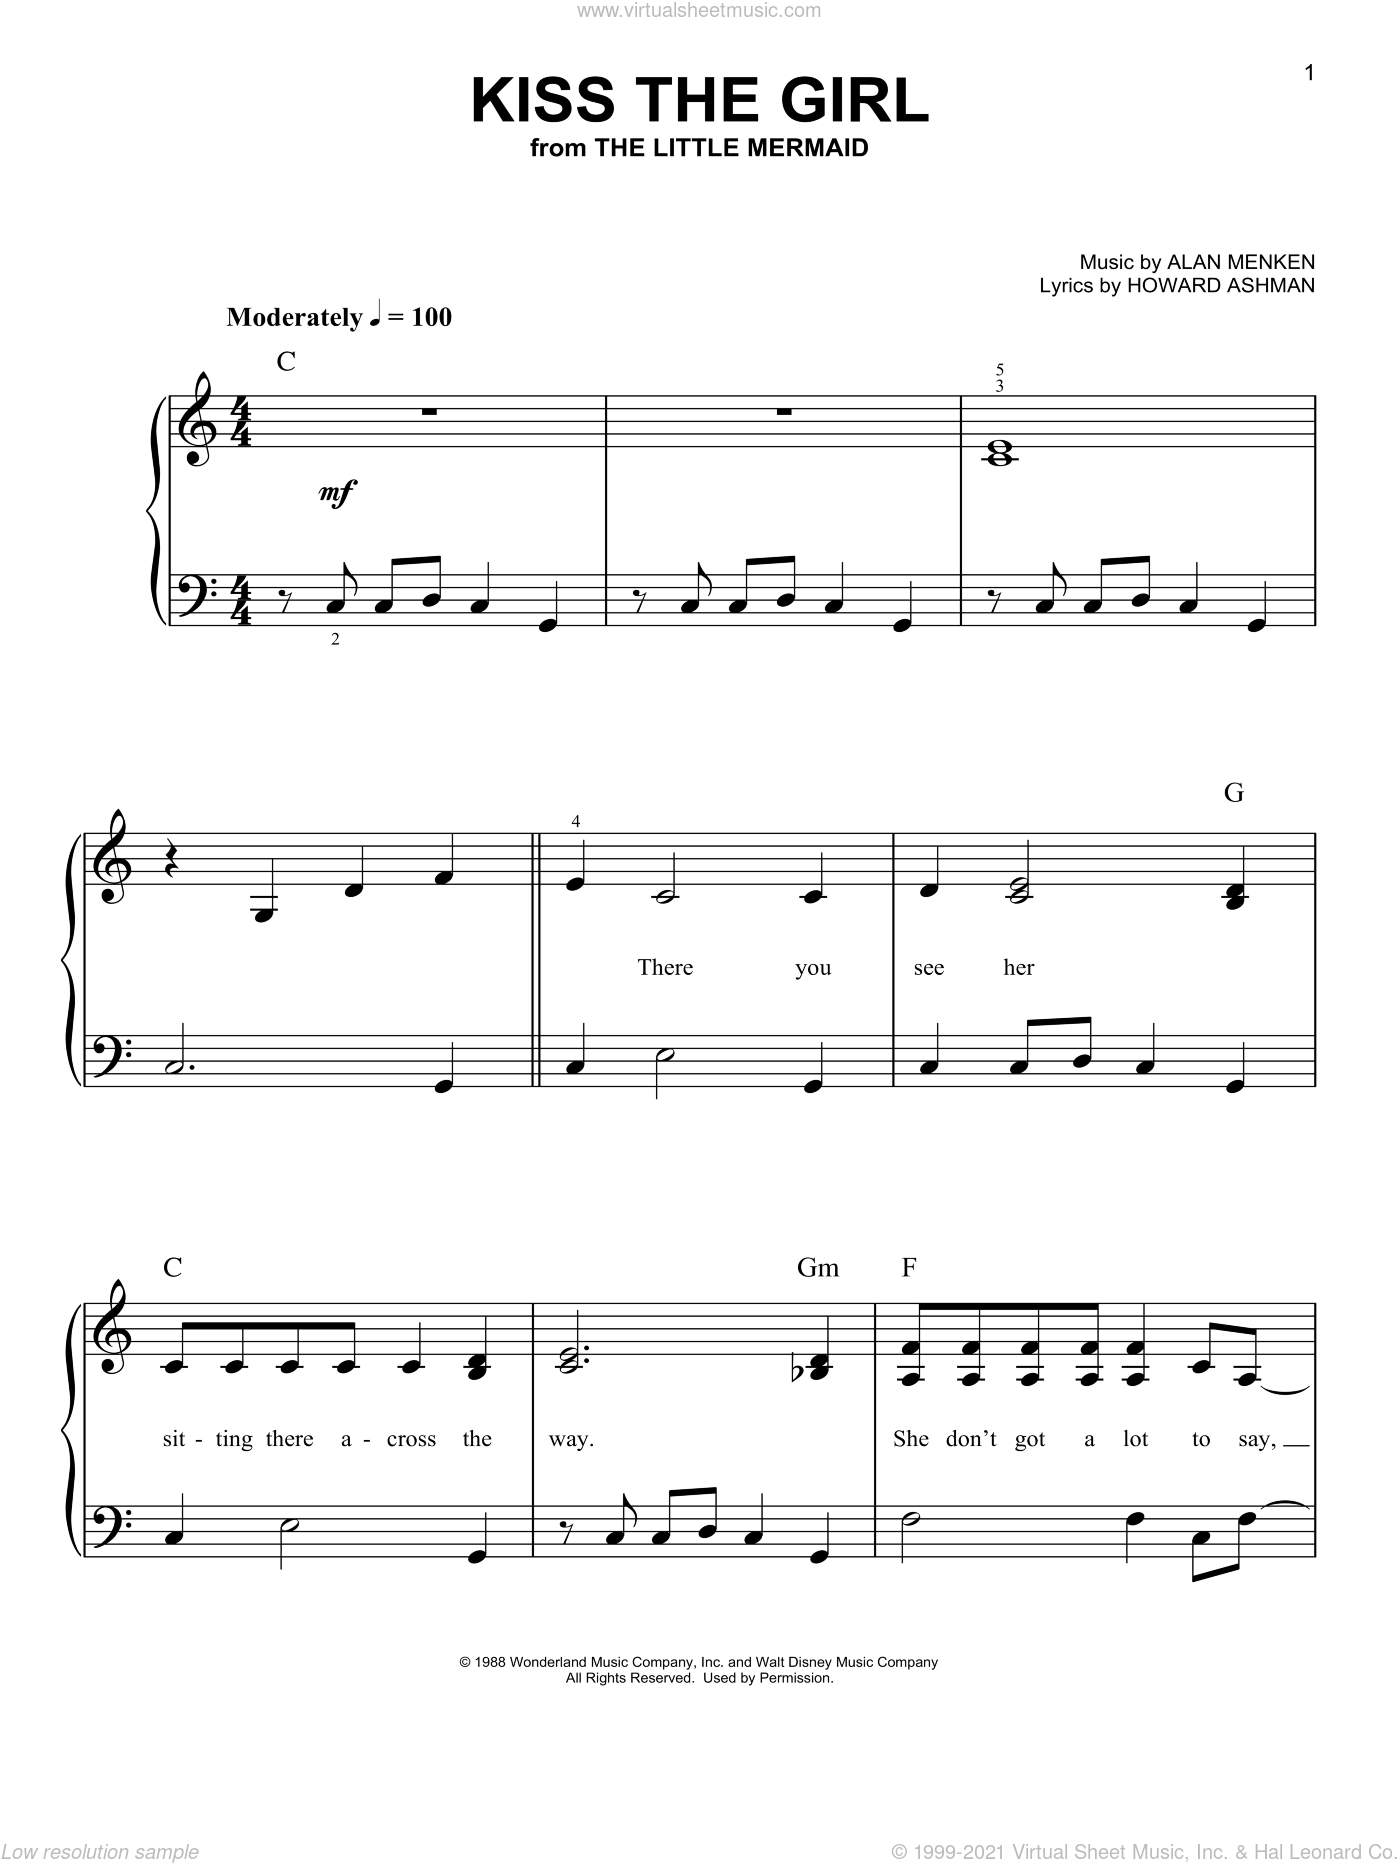 Kiss The Girl (from The Little Mermaid) sheet music for piano solo by Alan Menken, The Little Mermaid (Movie) and Howard Ashman, easy skill level